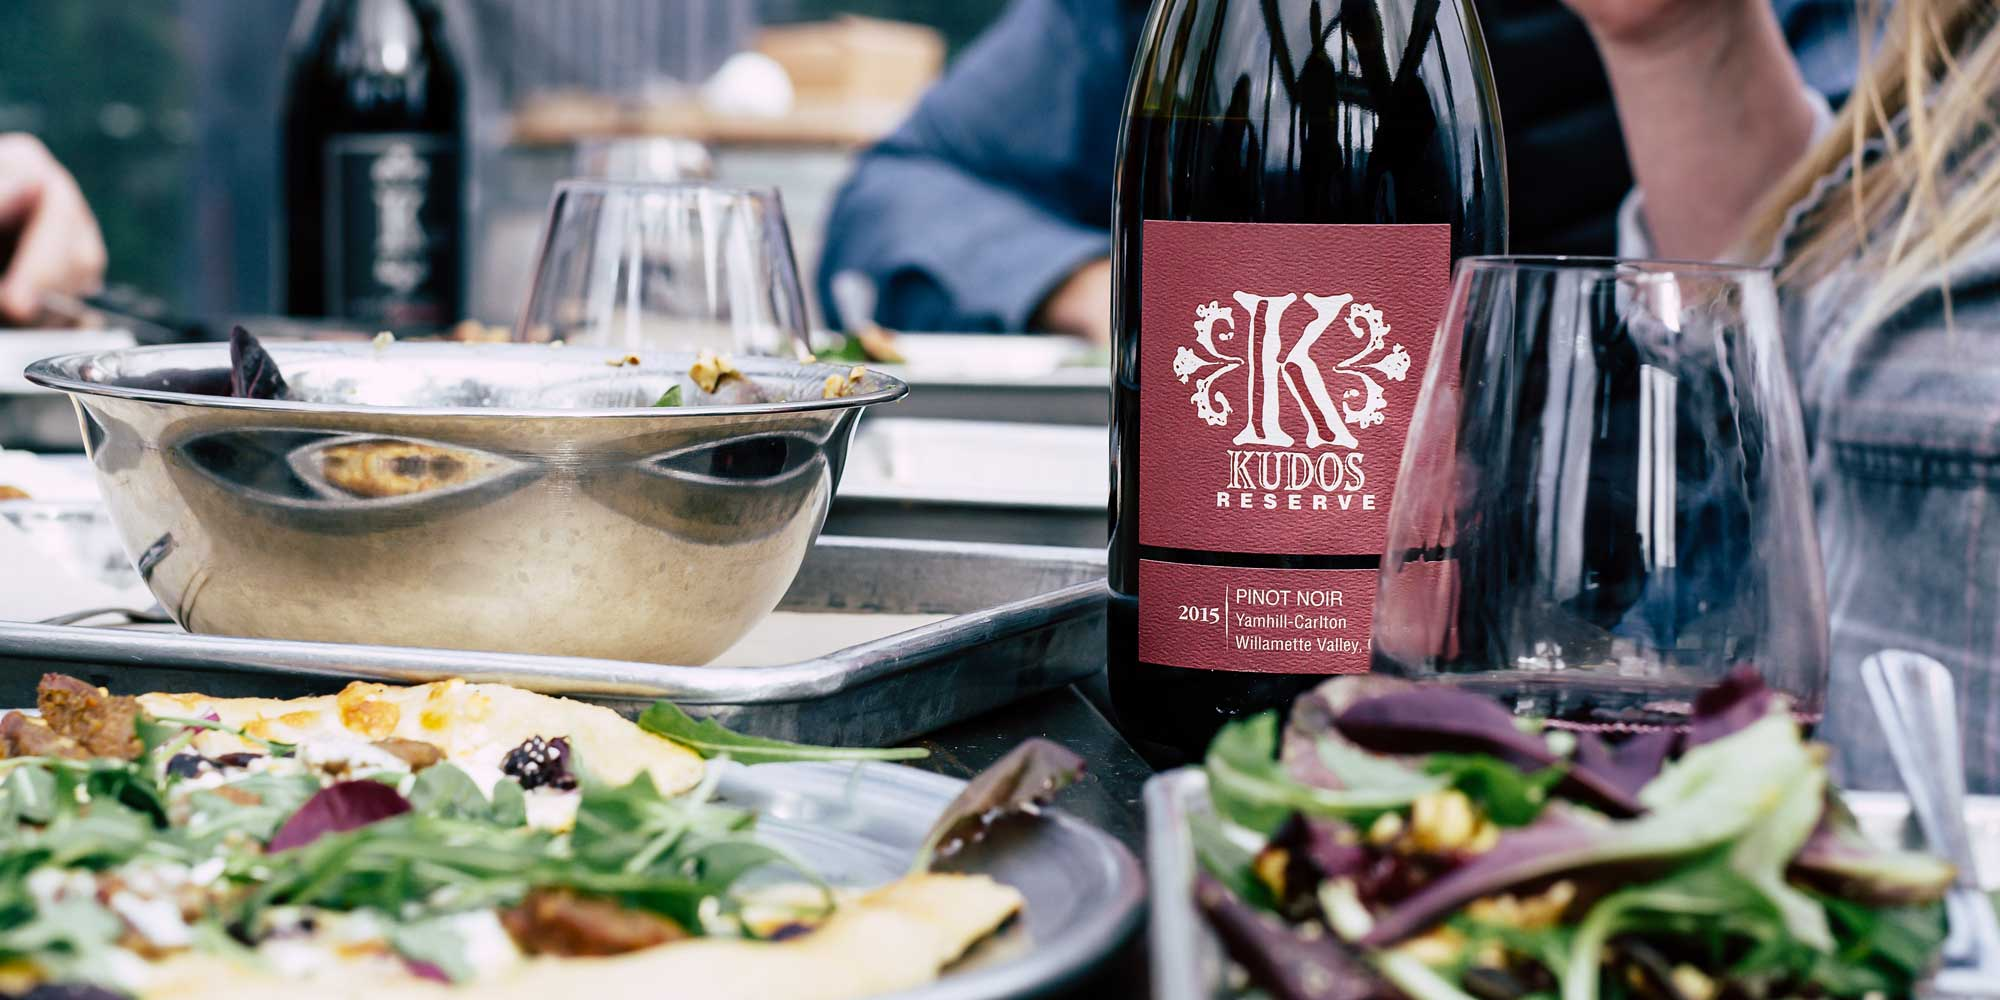 Kudos-reserve-lunch